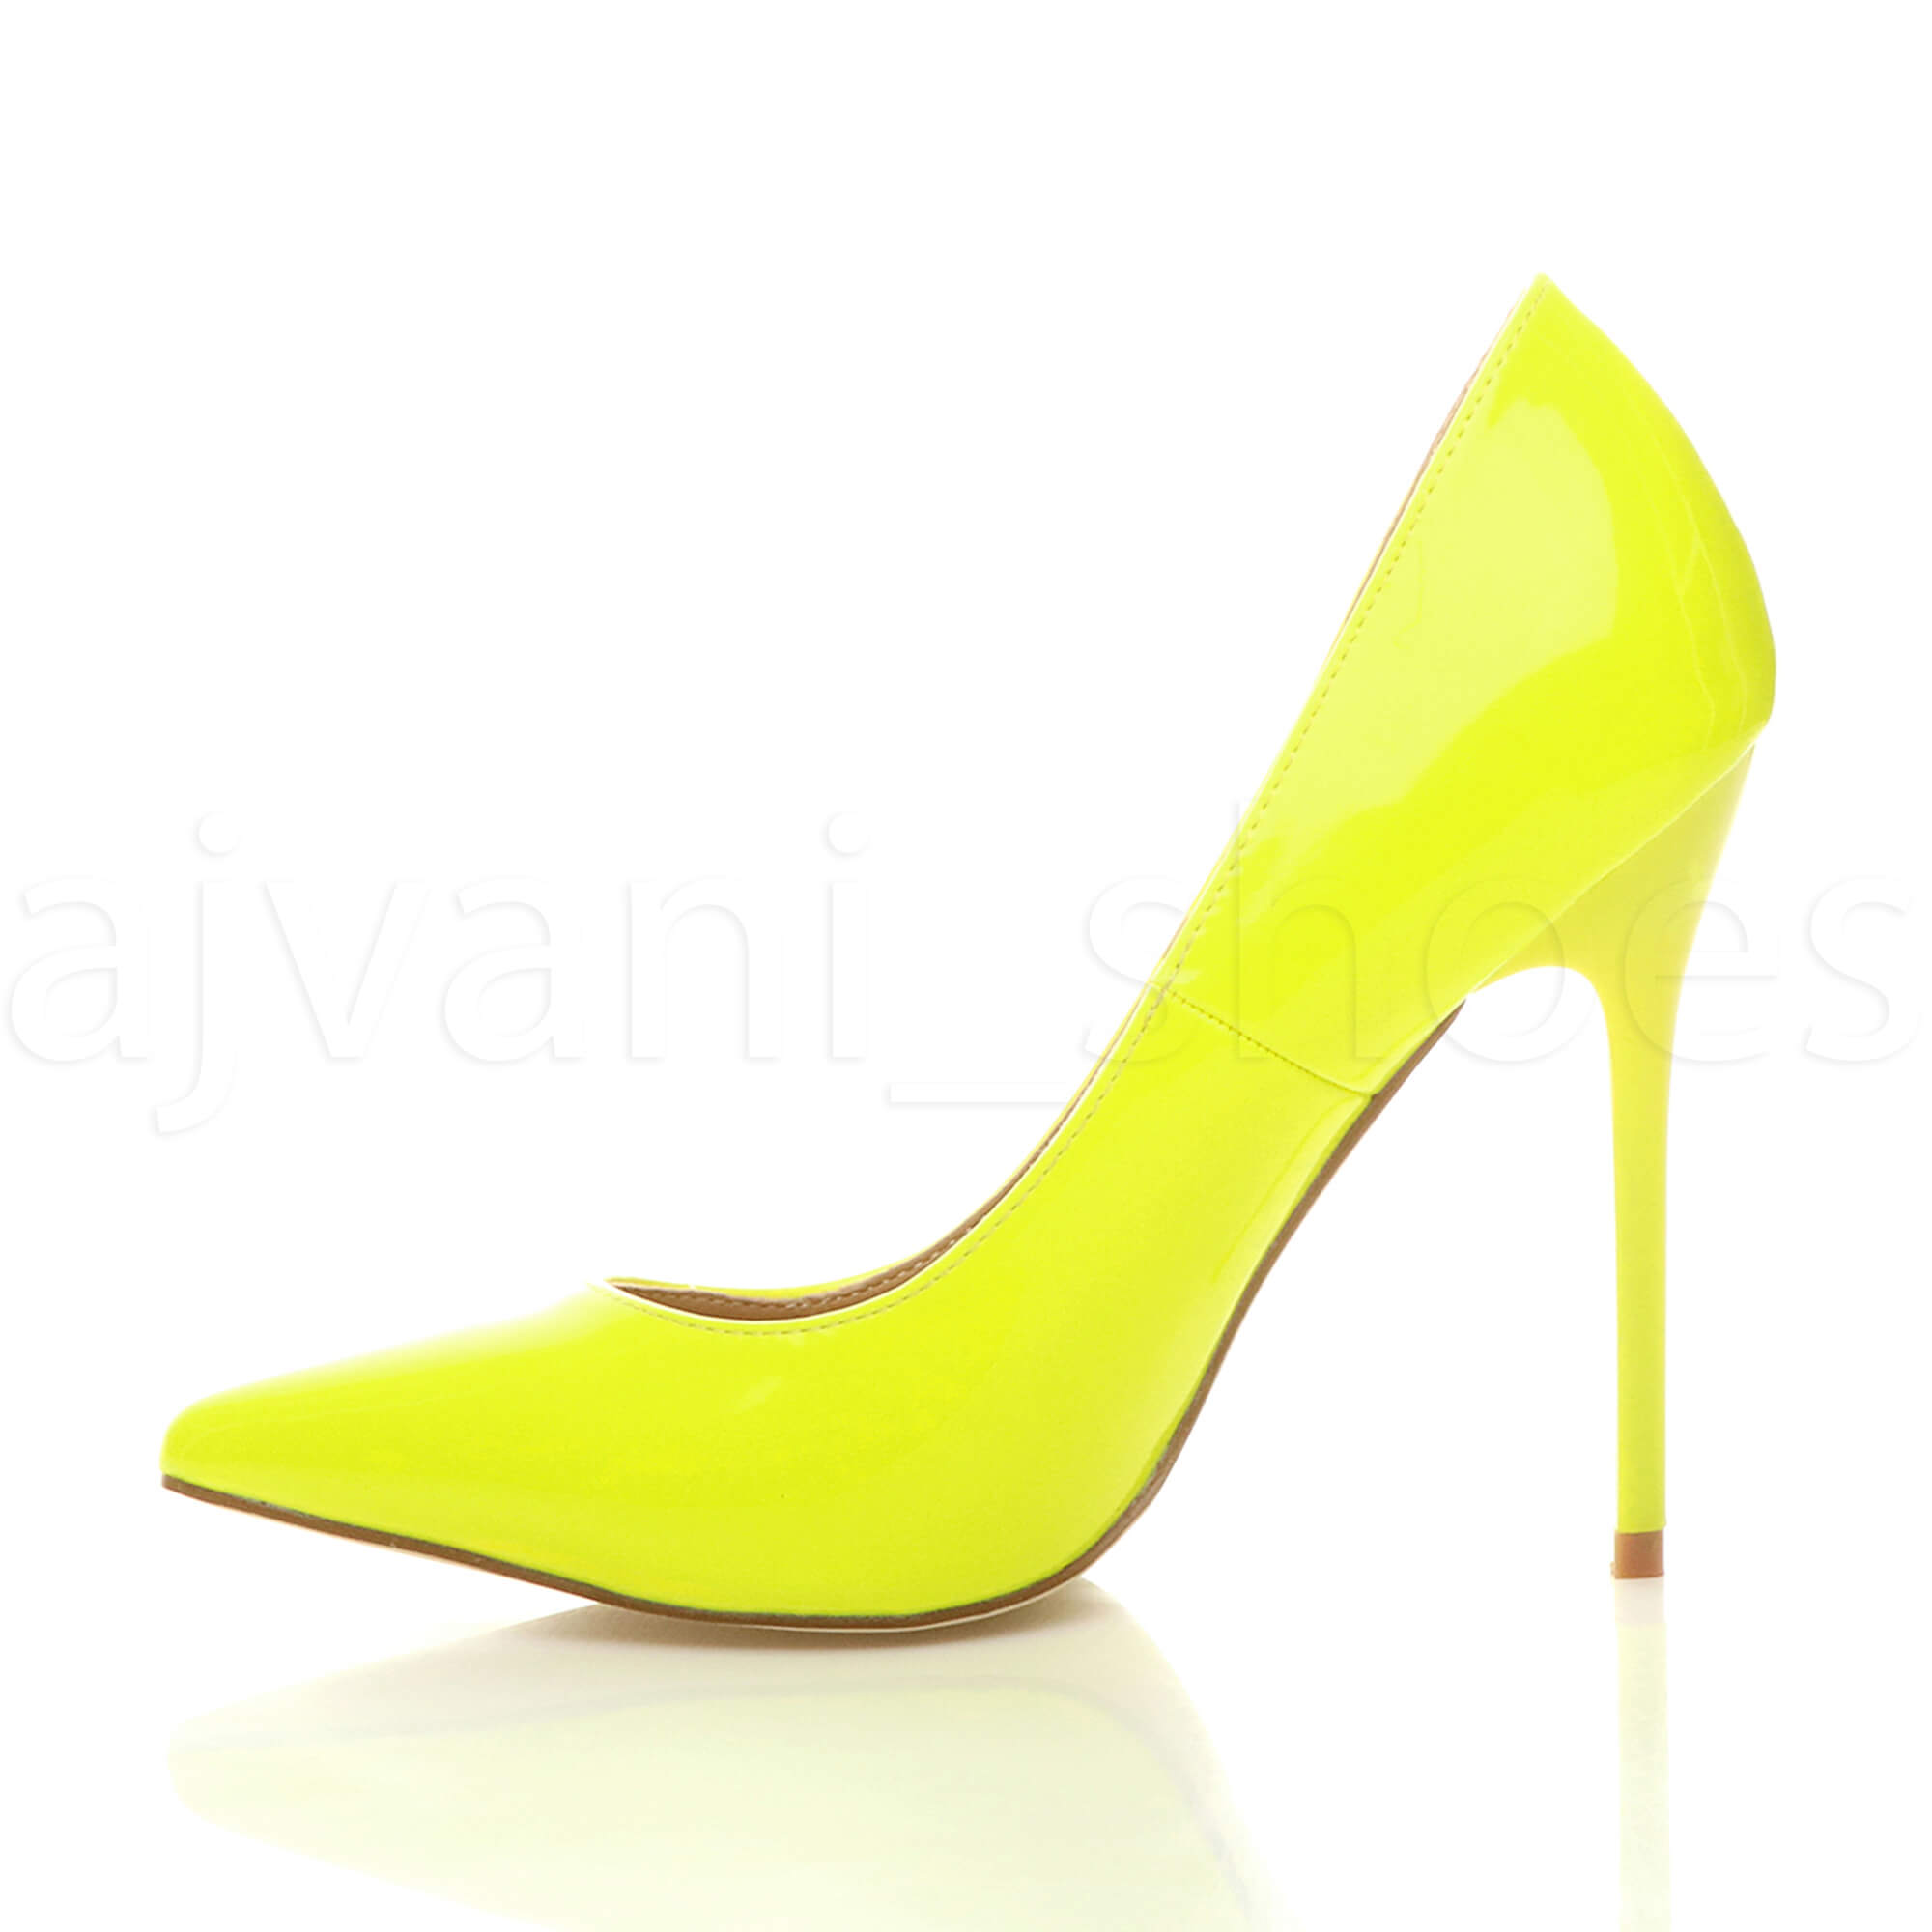 WOMENS-LADIES-HIGH-HEEL-POINTED-CONTRAST-COURT-SMART-PARTY-WORK-SHOES-PUMPS-SIZE thumbnail 114